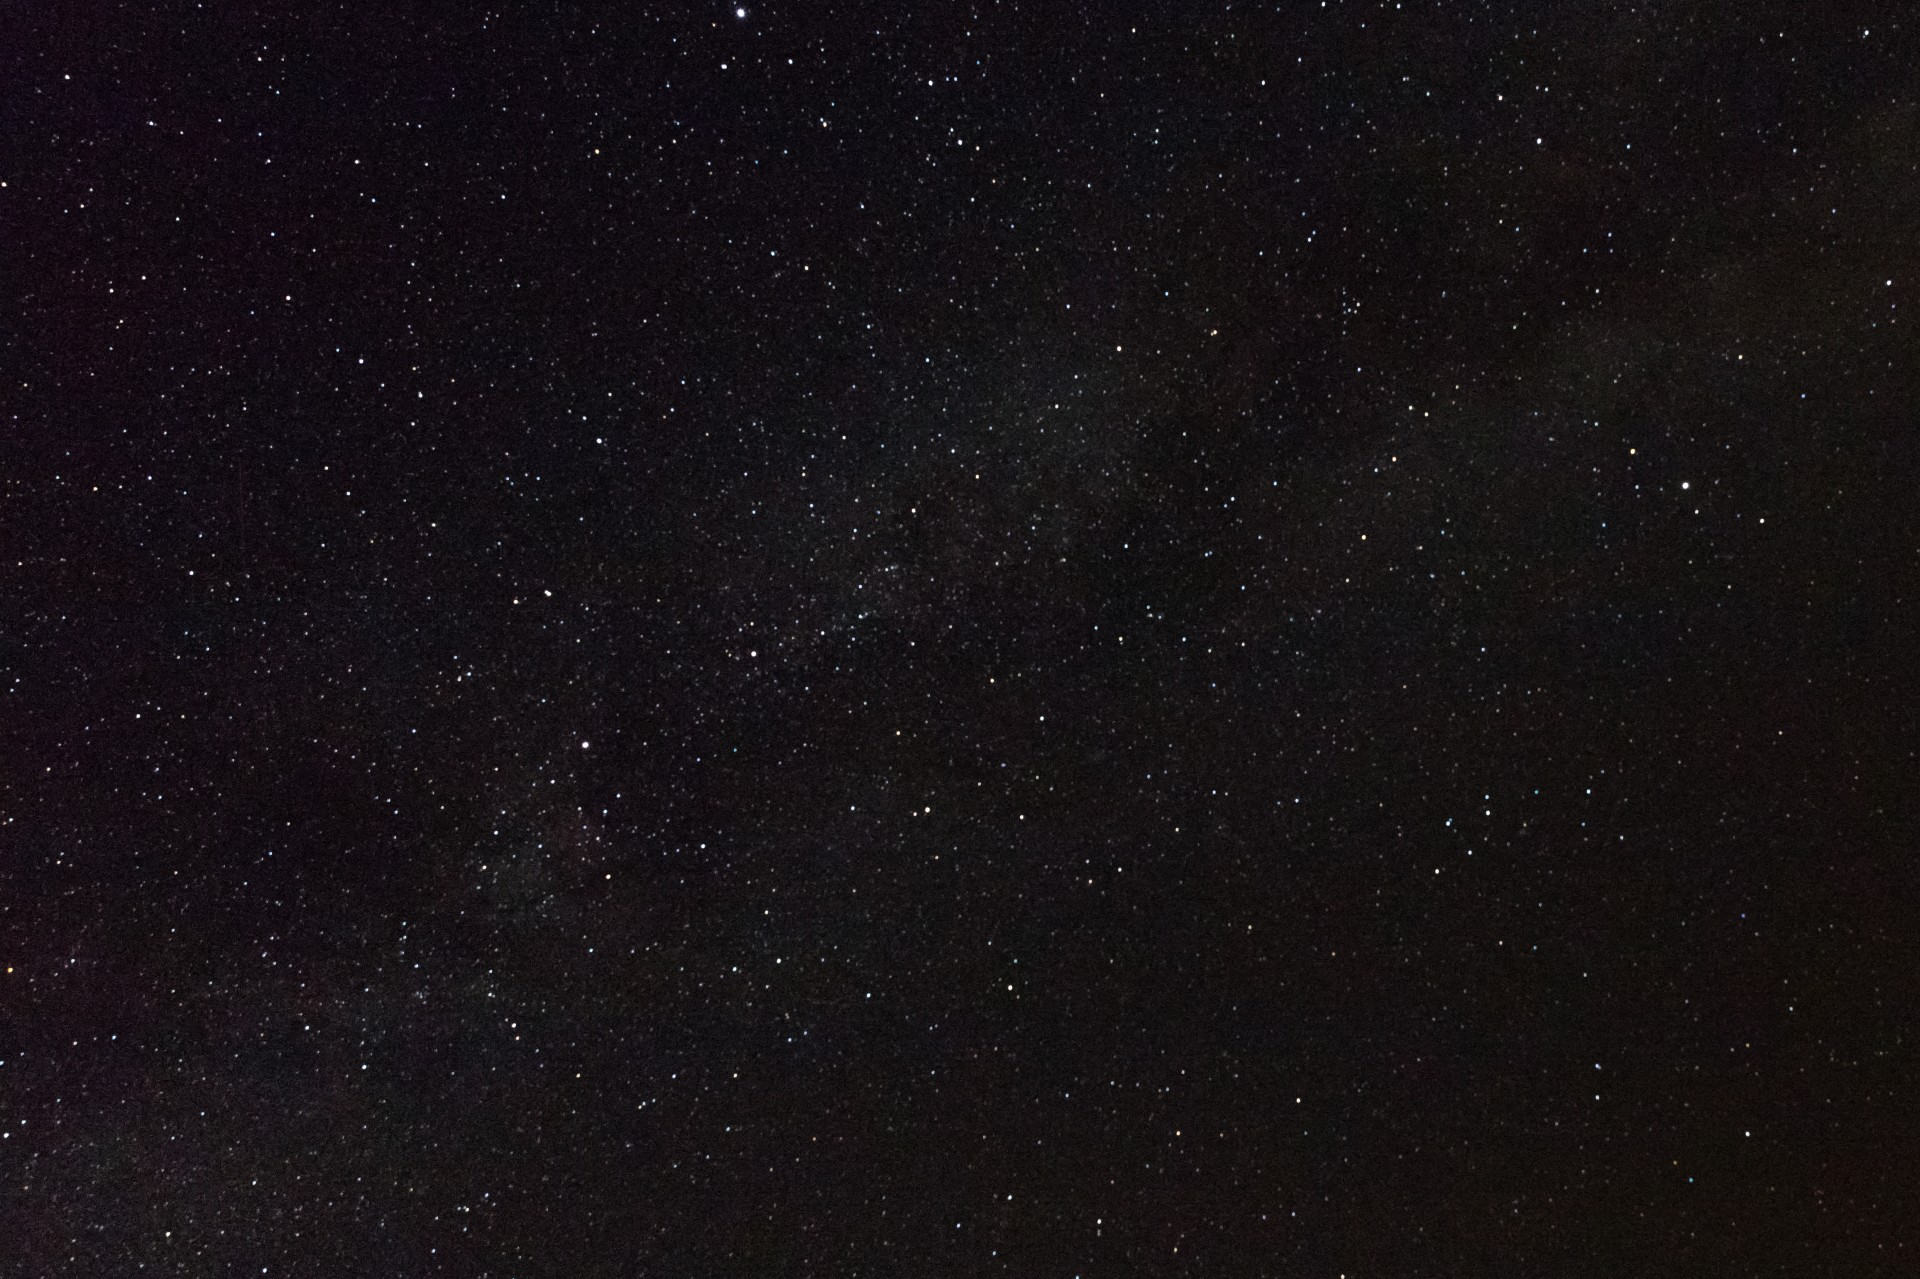 Night Sky Background Powerpoint Backgrounds For Free Powerpoint Templates